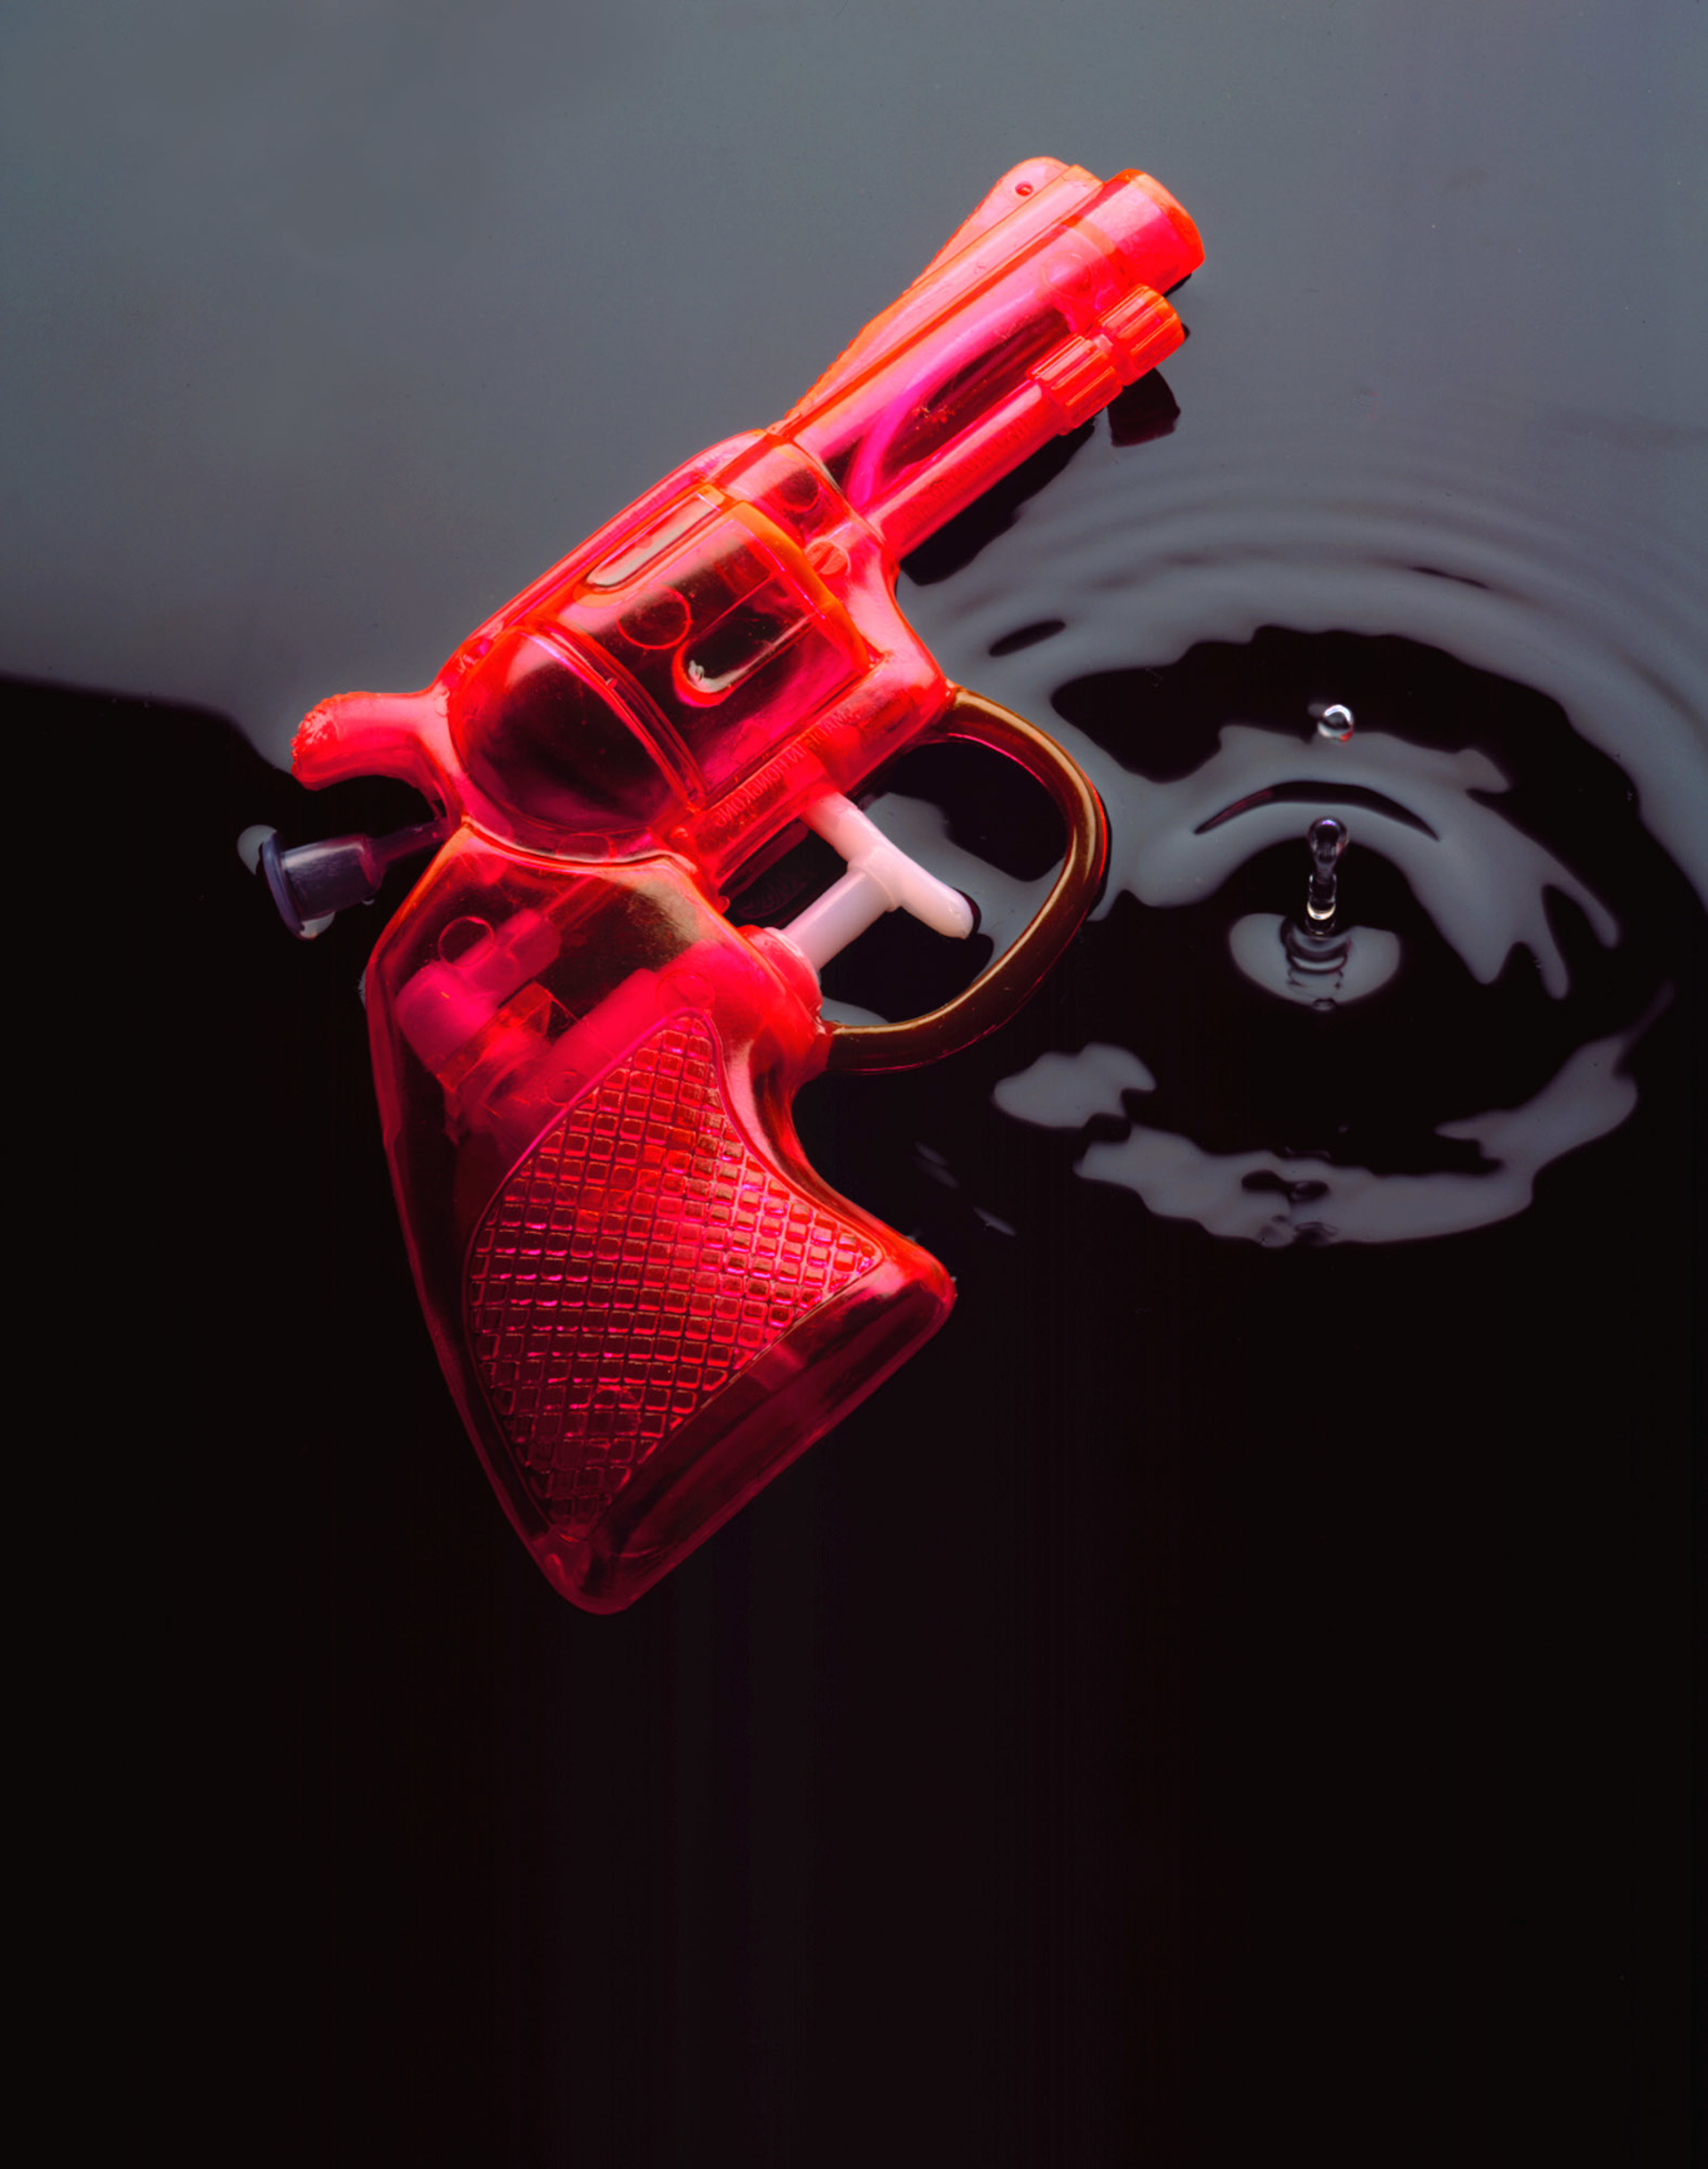 Water Pistol      Ed. 2/20 by Phil Marco